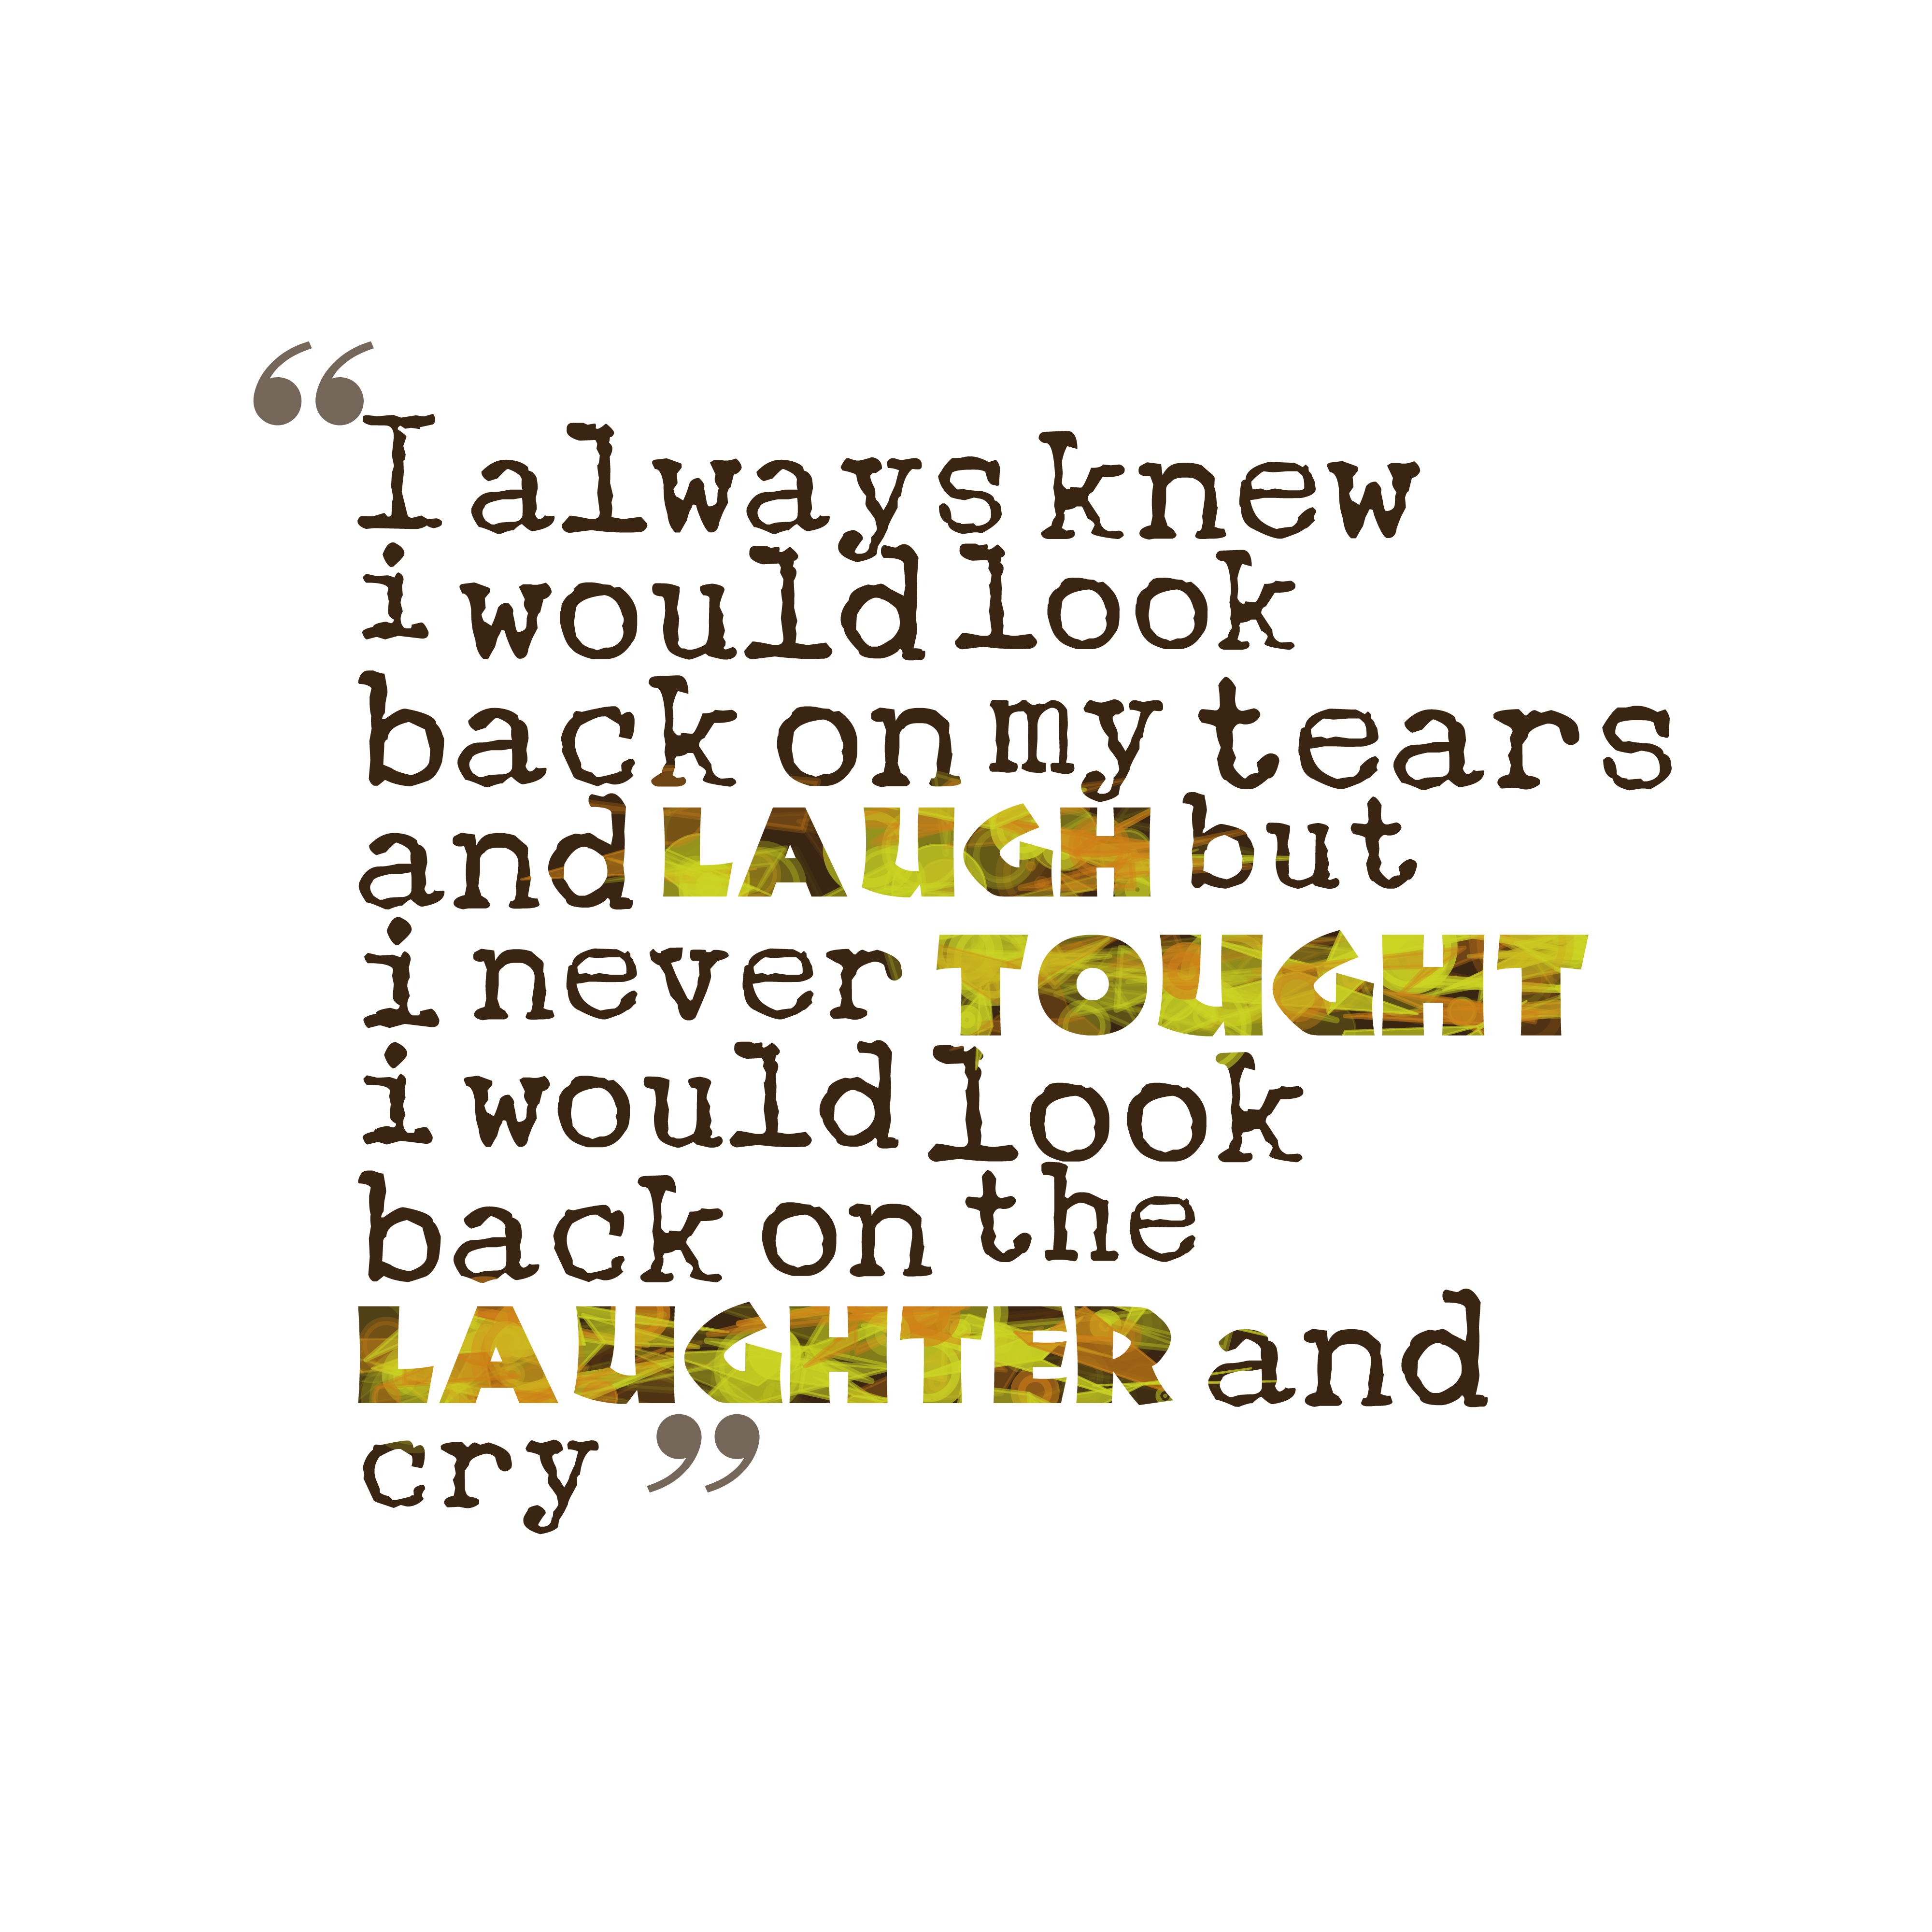 Quotes image of I always knew i would look back on my tears and laugh but i never tought i would look back on the laughter and cry